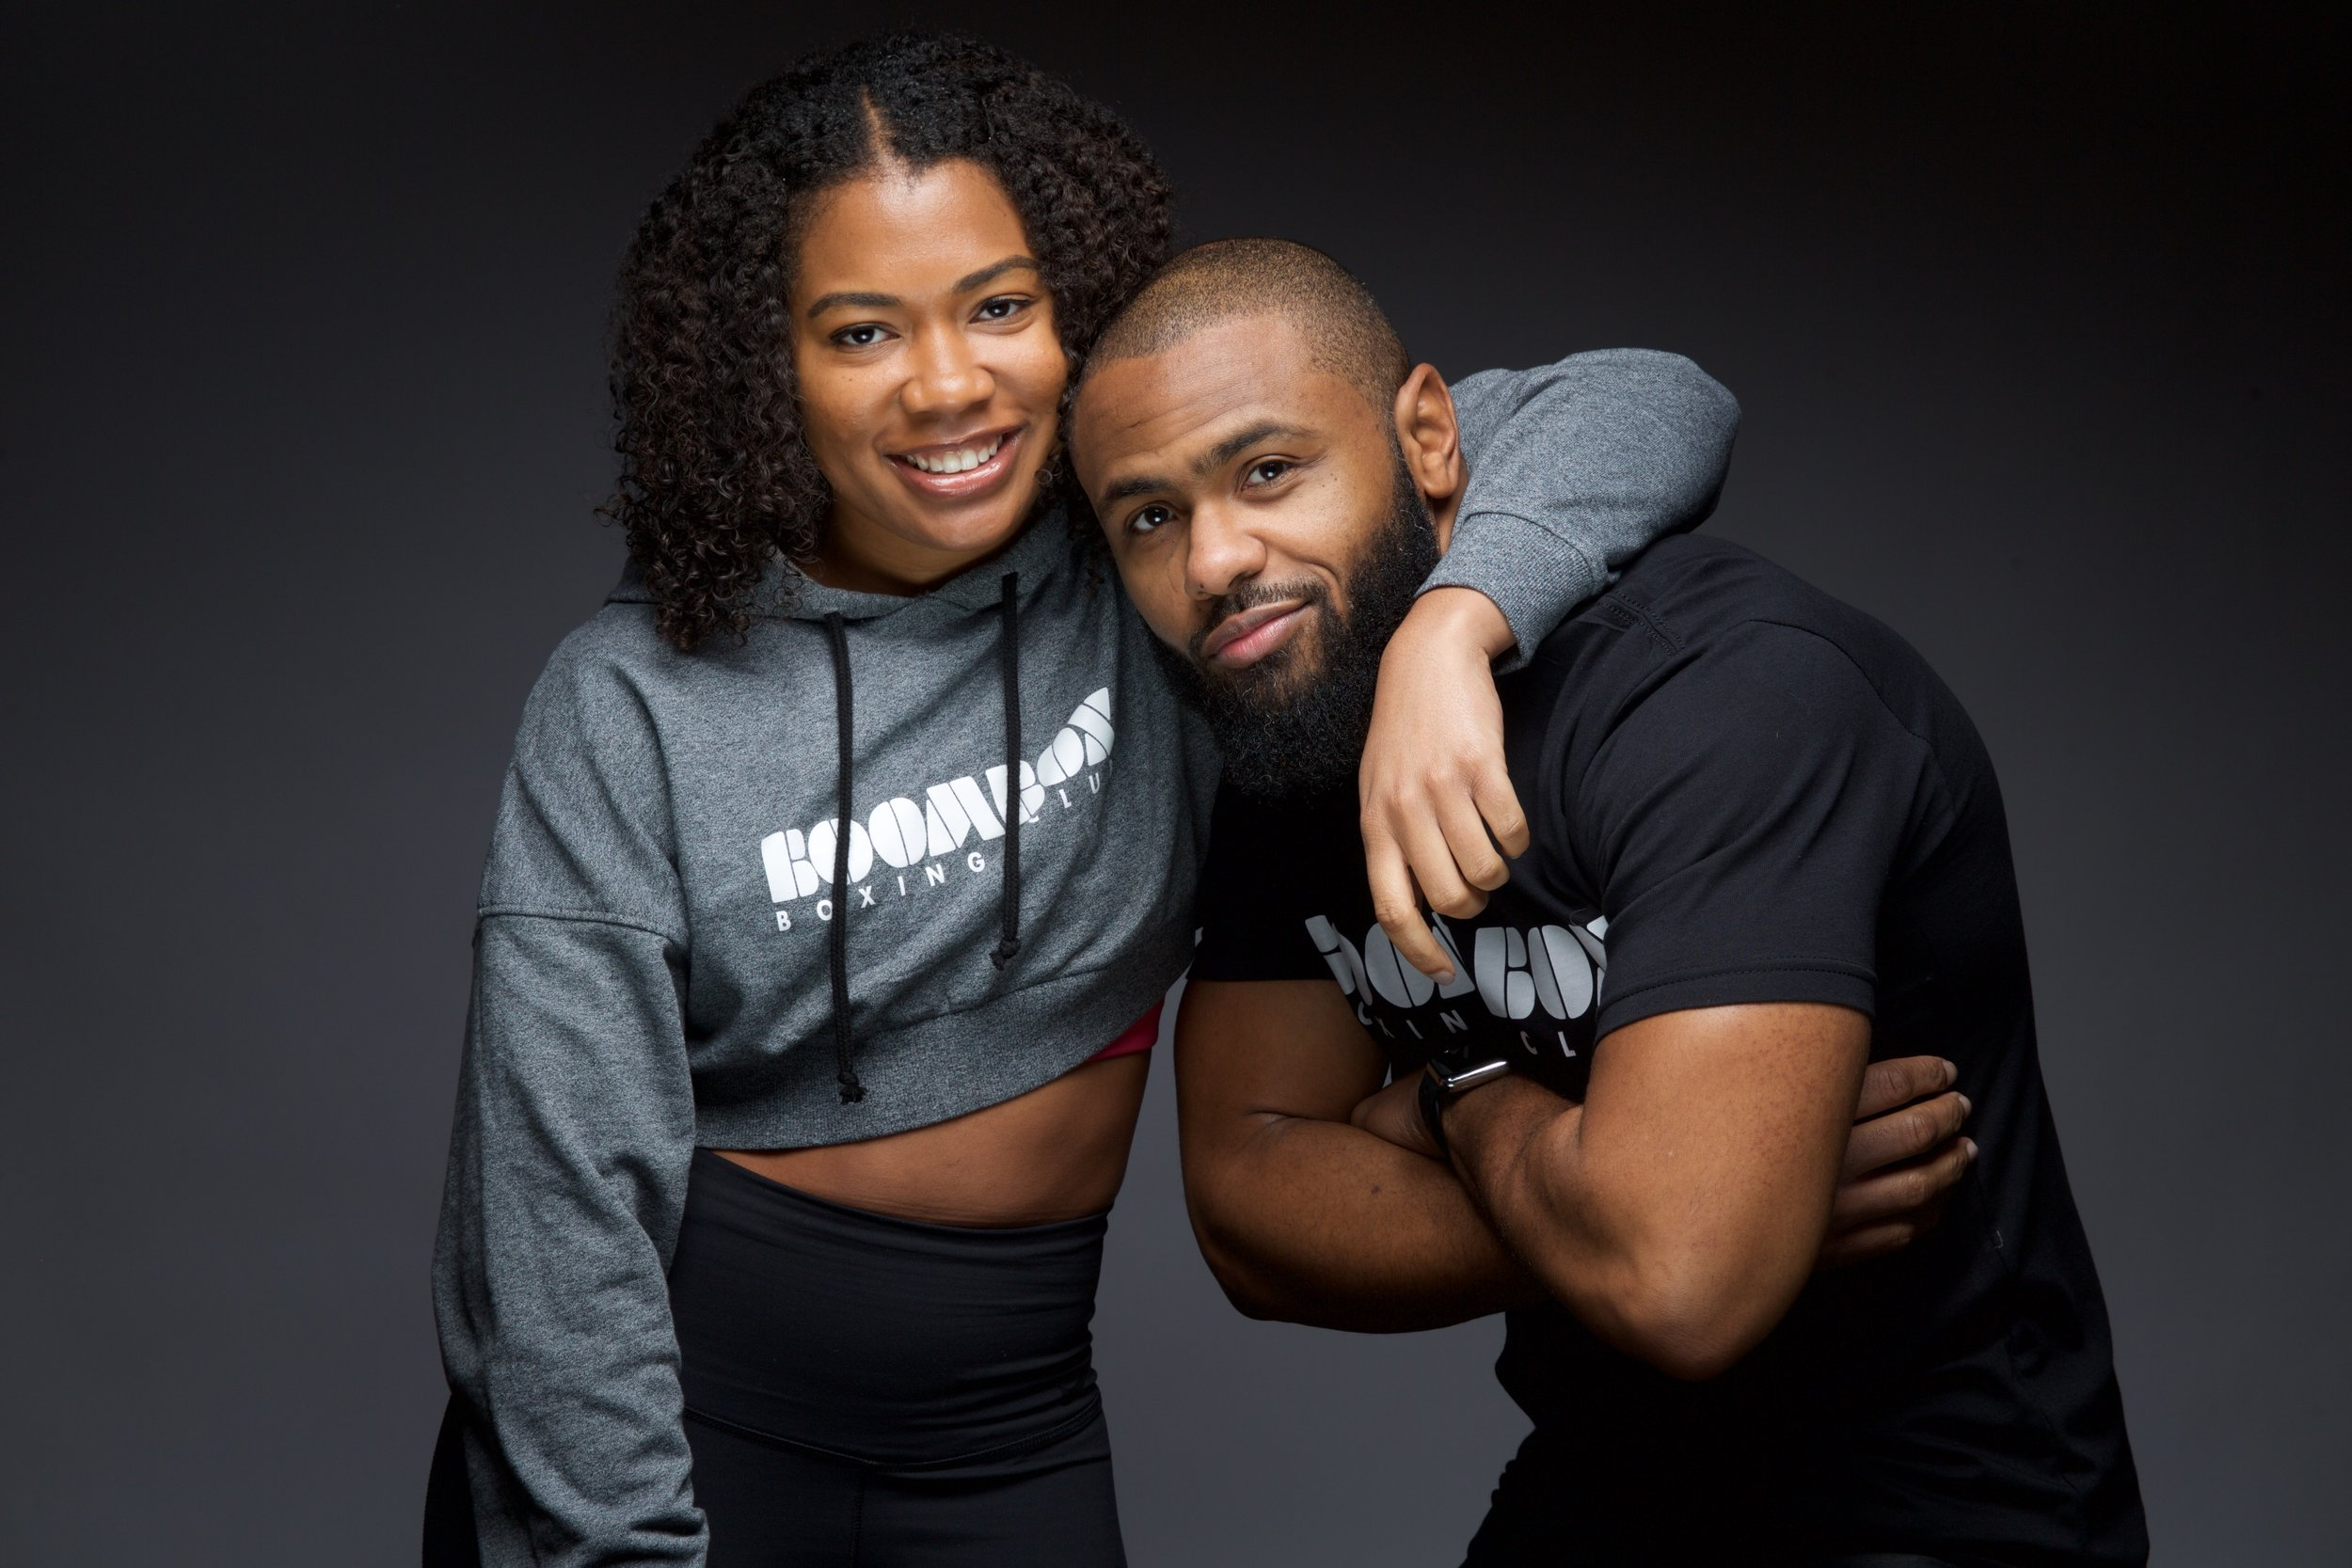 Reggie and Angela founded BOOMBOX on their love for boxing, music and community. Their goal is simple, to empower and inspire, while making the health benefits of boxing-inspired training accessible to all fitness levels and backgrounds. -